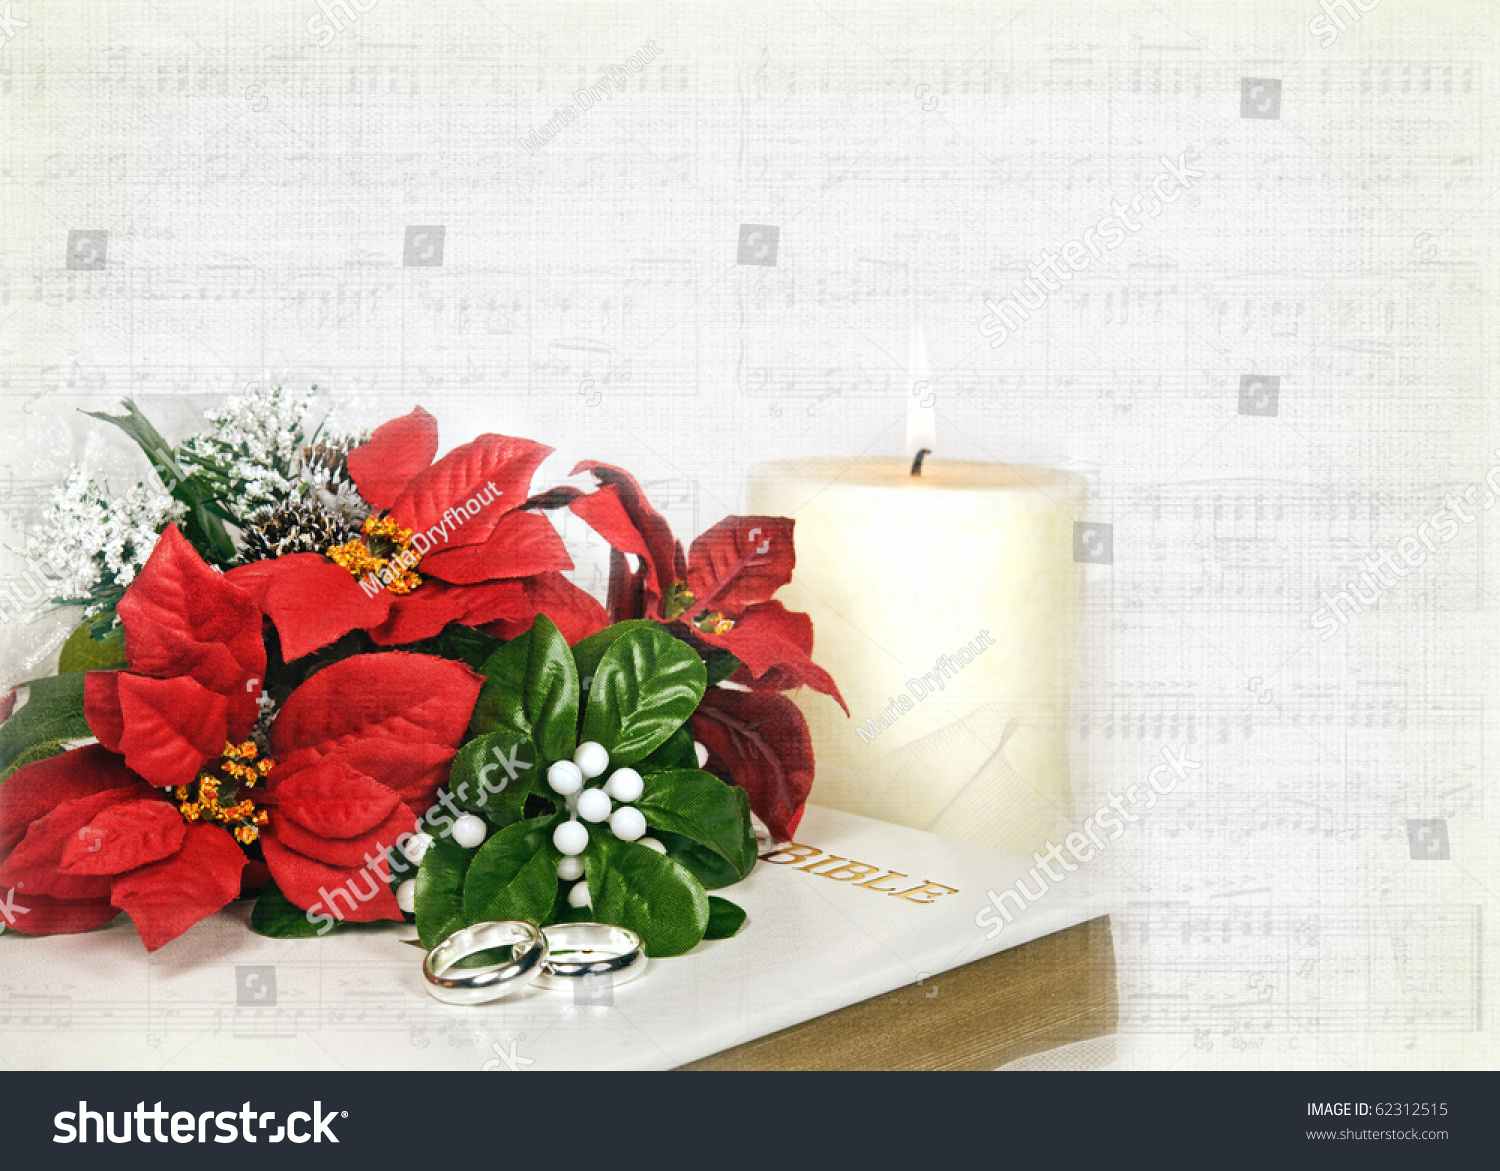 Christmas Bridal Bouquet Rings On Bible Stock Illustration 62312515 ...